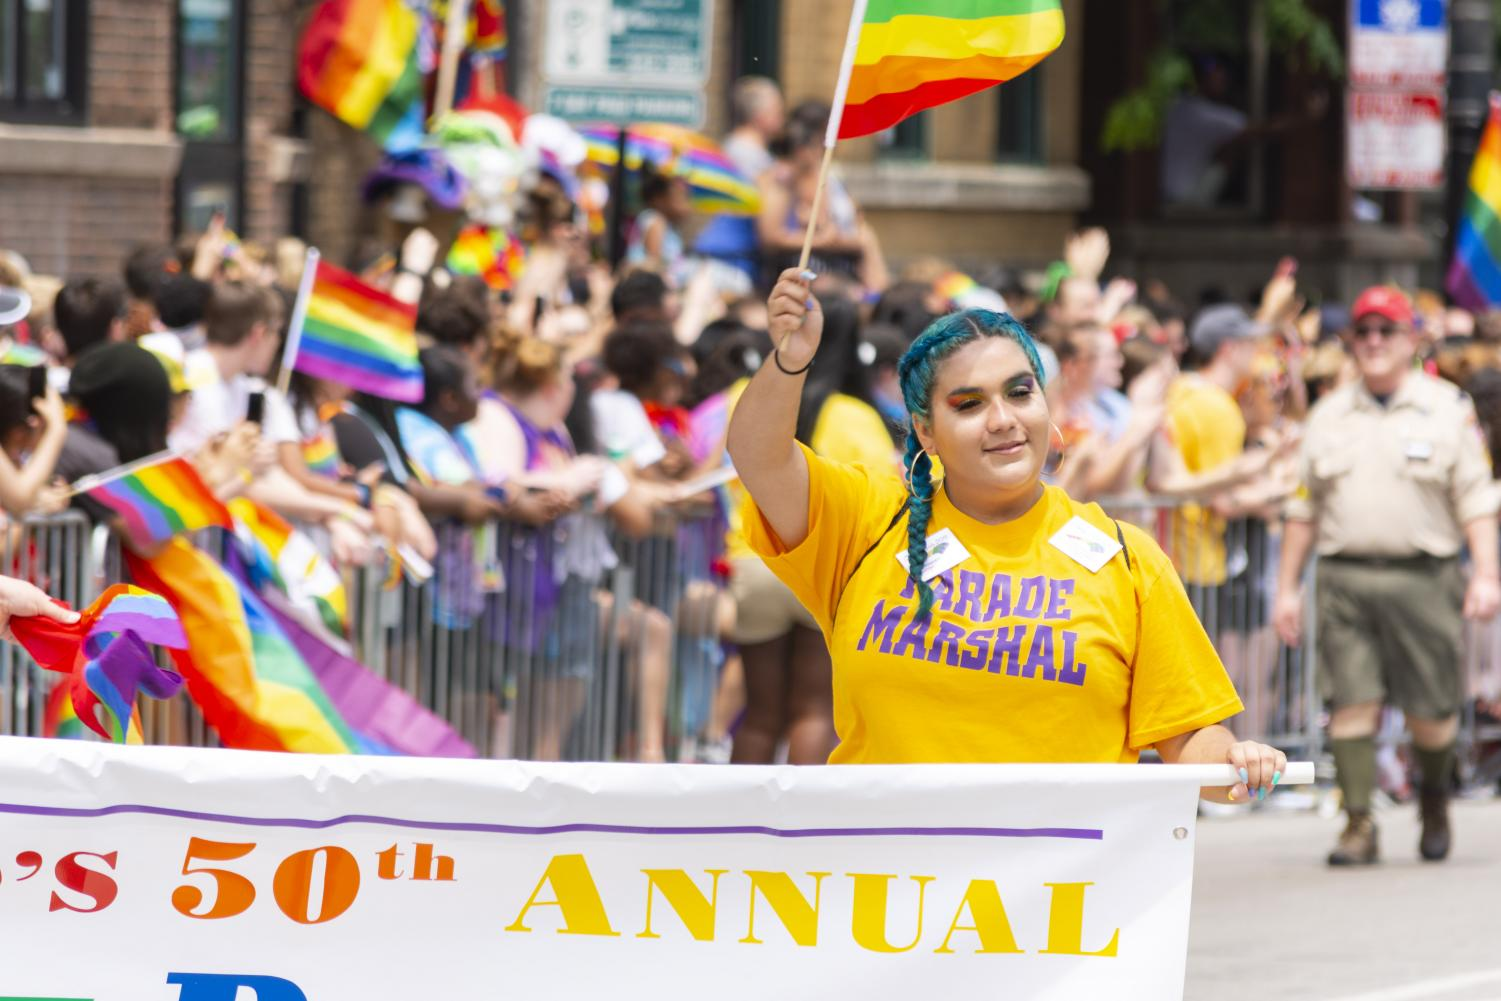 A+parade+marshal+waves+a+Pride+flag+while+carrying+the+banner+to+mark+the+beginning+of+Chicago%27s+50th+annual+Pride+Parade.